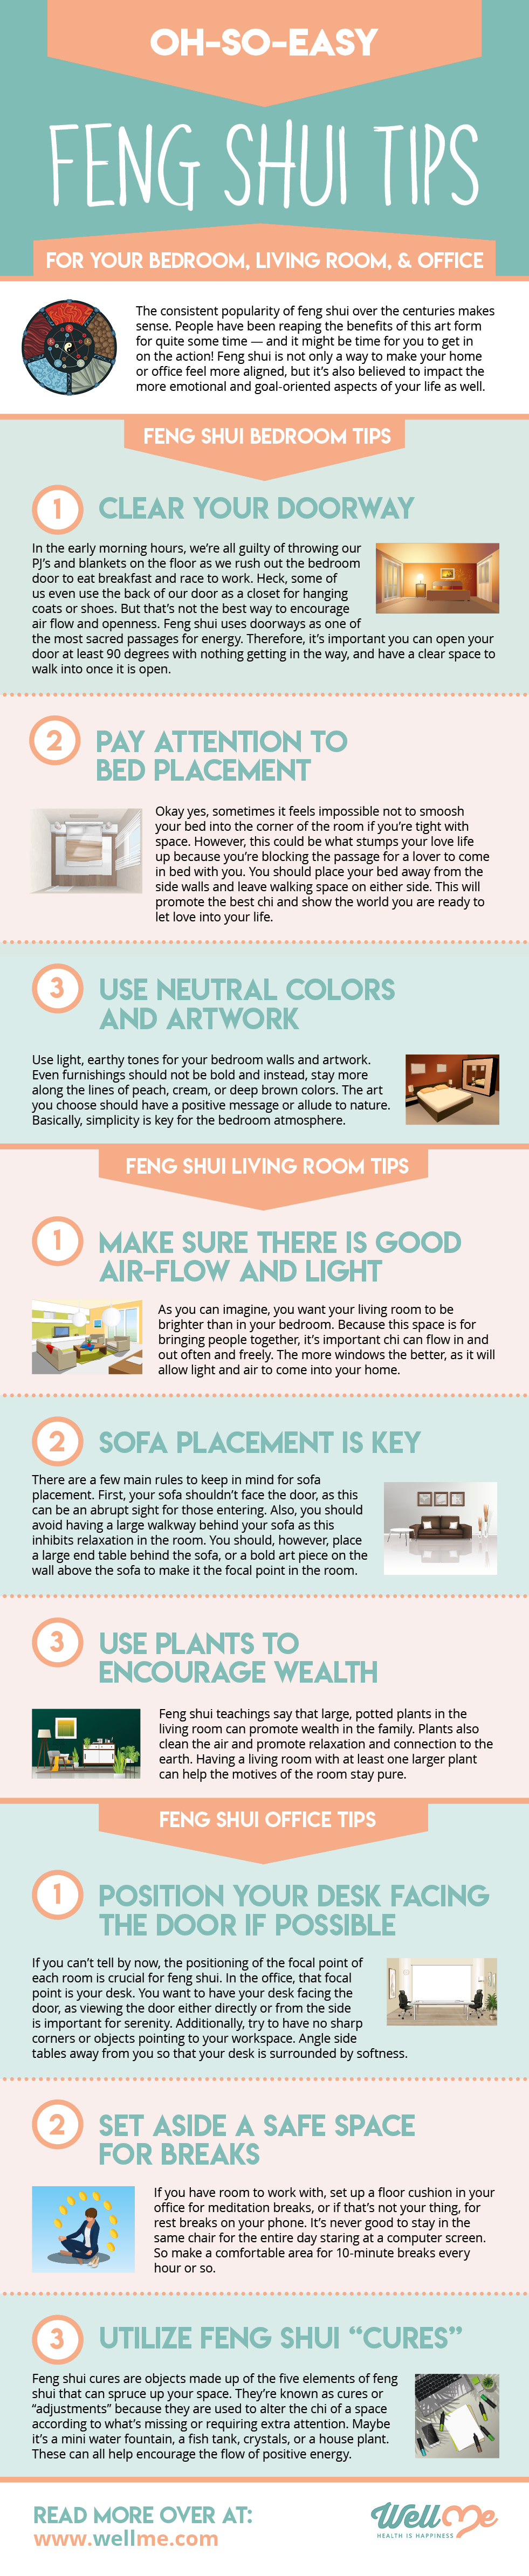 Oh-So-Easy Feng Shui Tips For Your Bedroom, Living Room, and Office